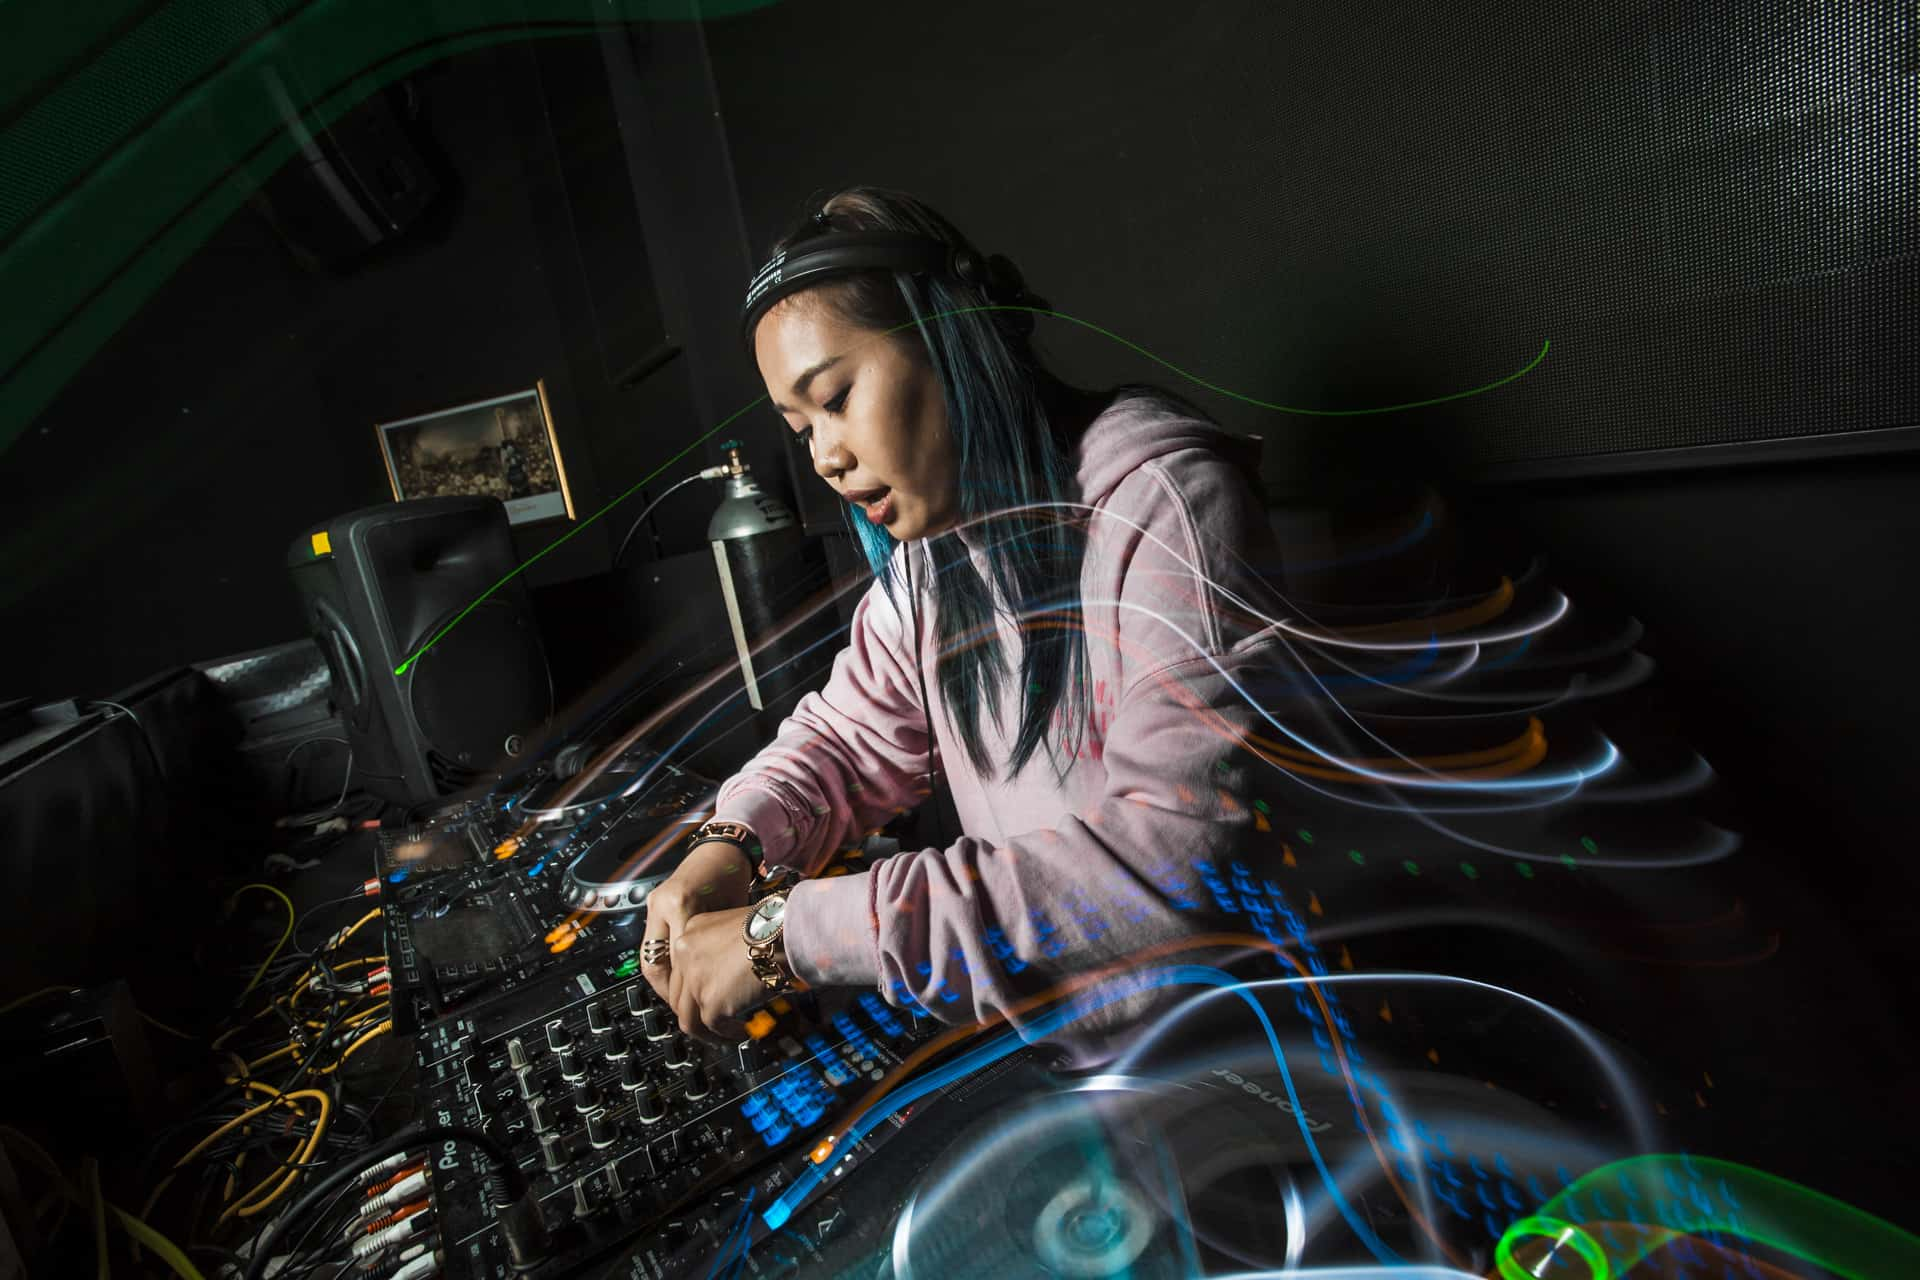 How A Student Made Her DJ Dreams Come True In 2 Years